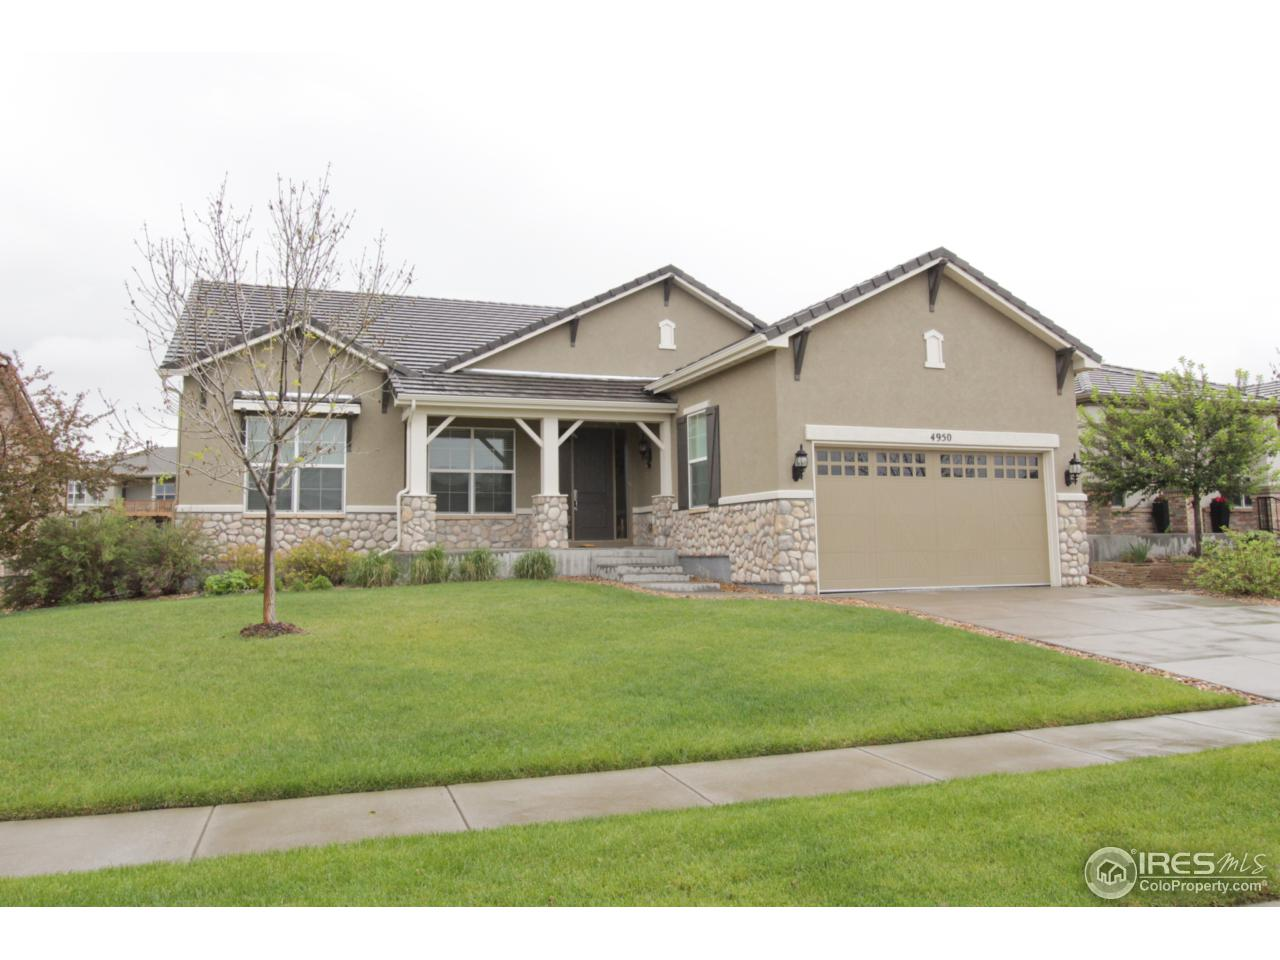 4950 Lindsey Dr, Broomfield, CO 80023